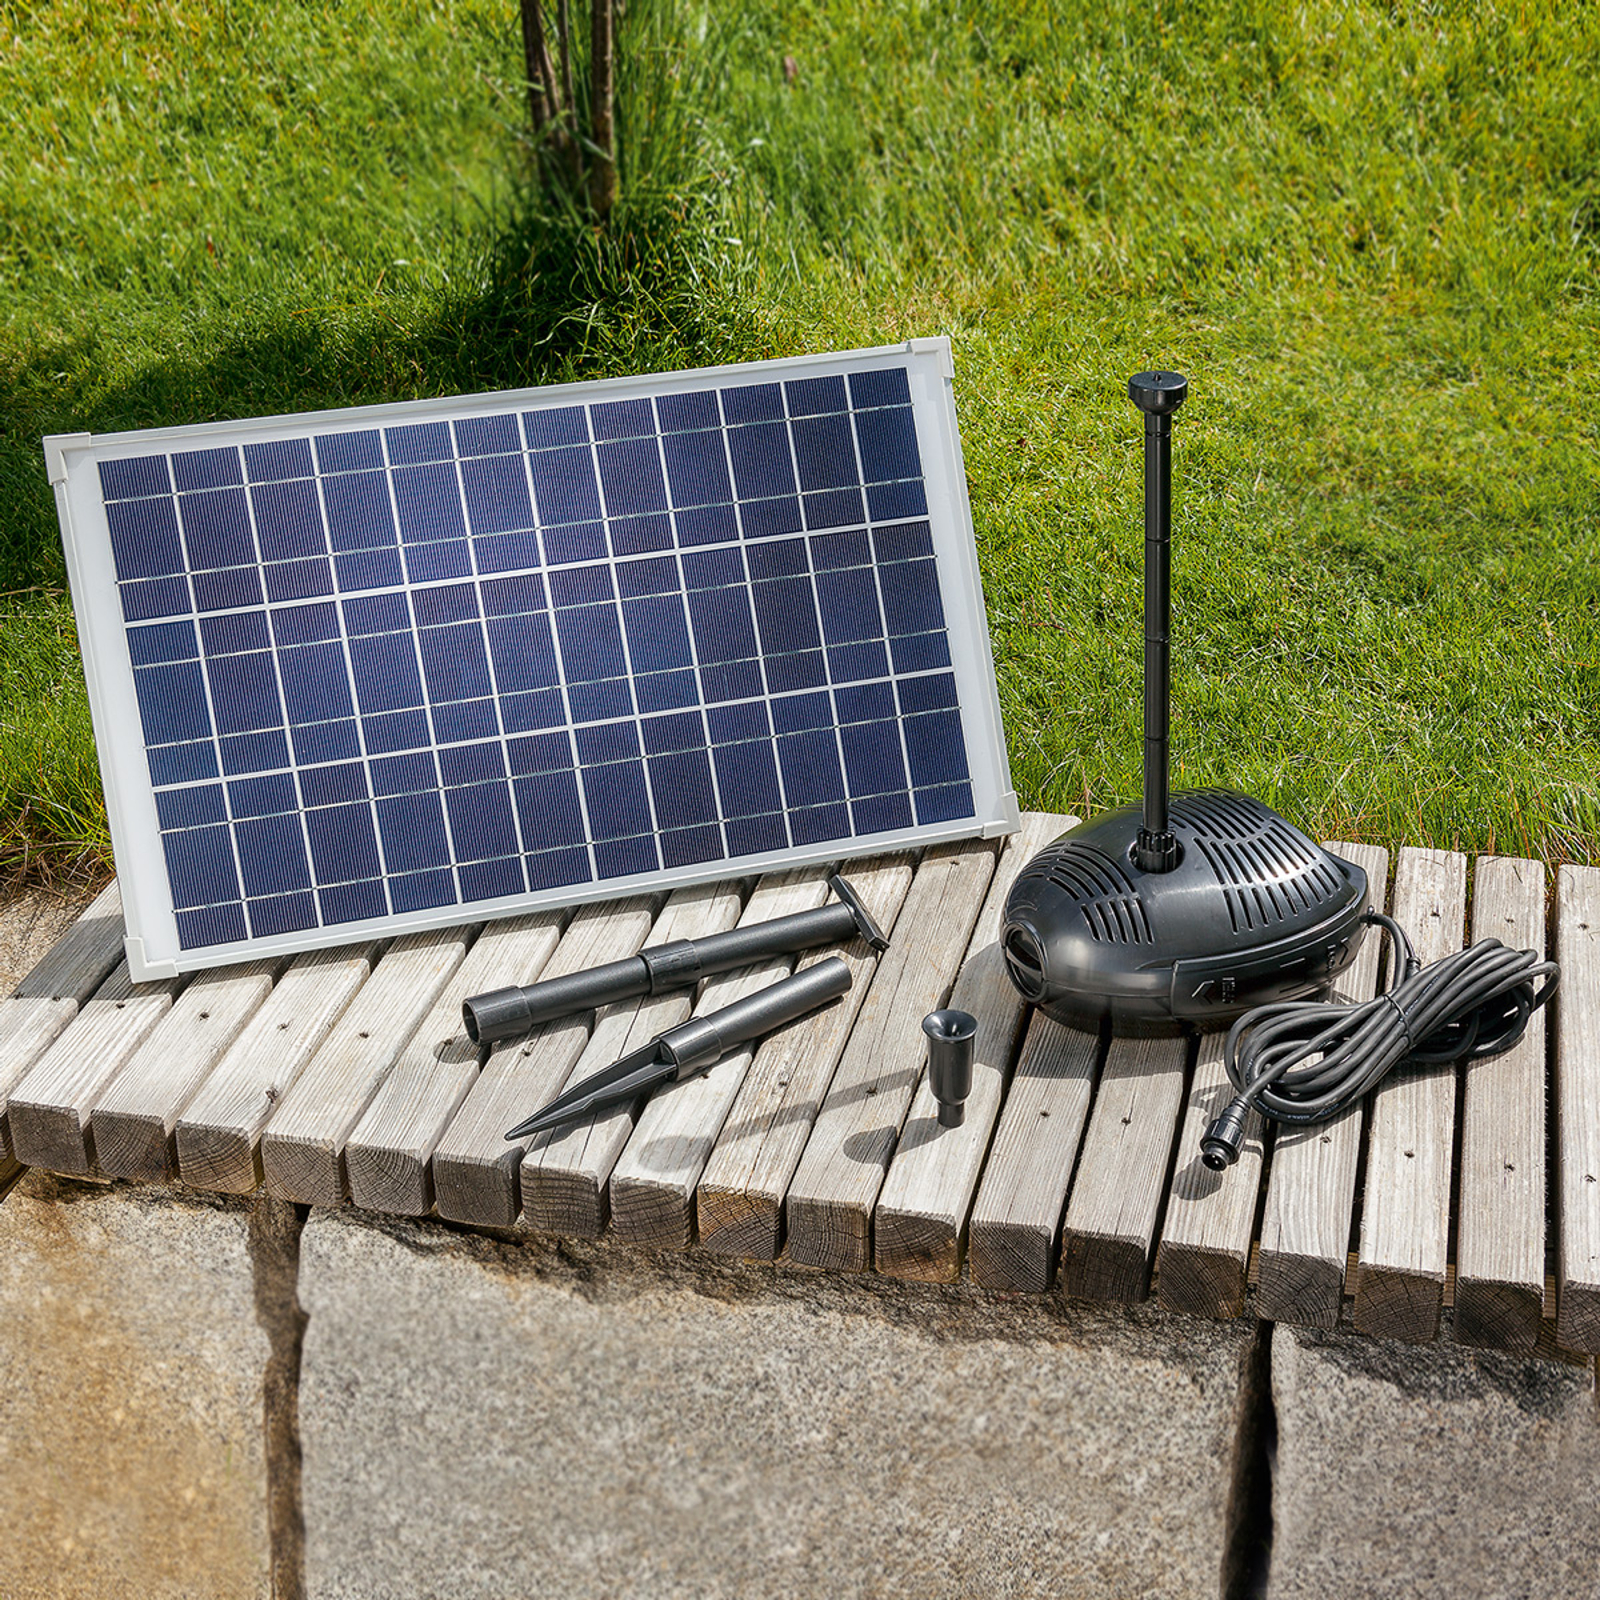 Pump system Roma solar powered_3012247_1